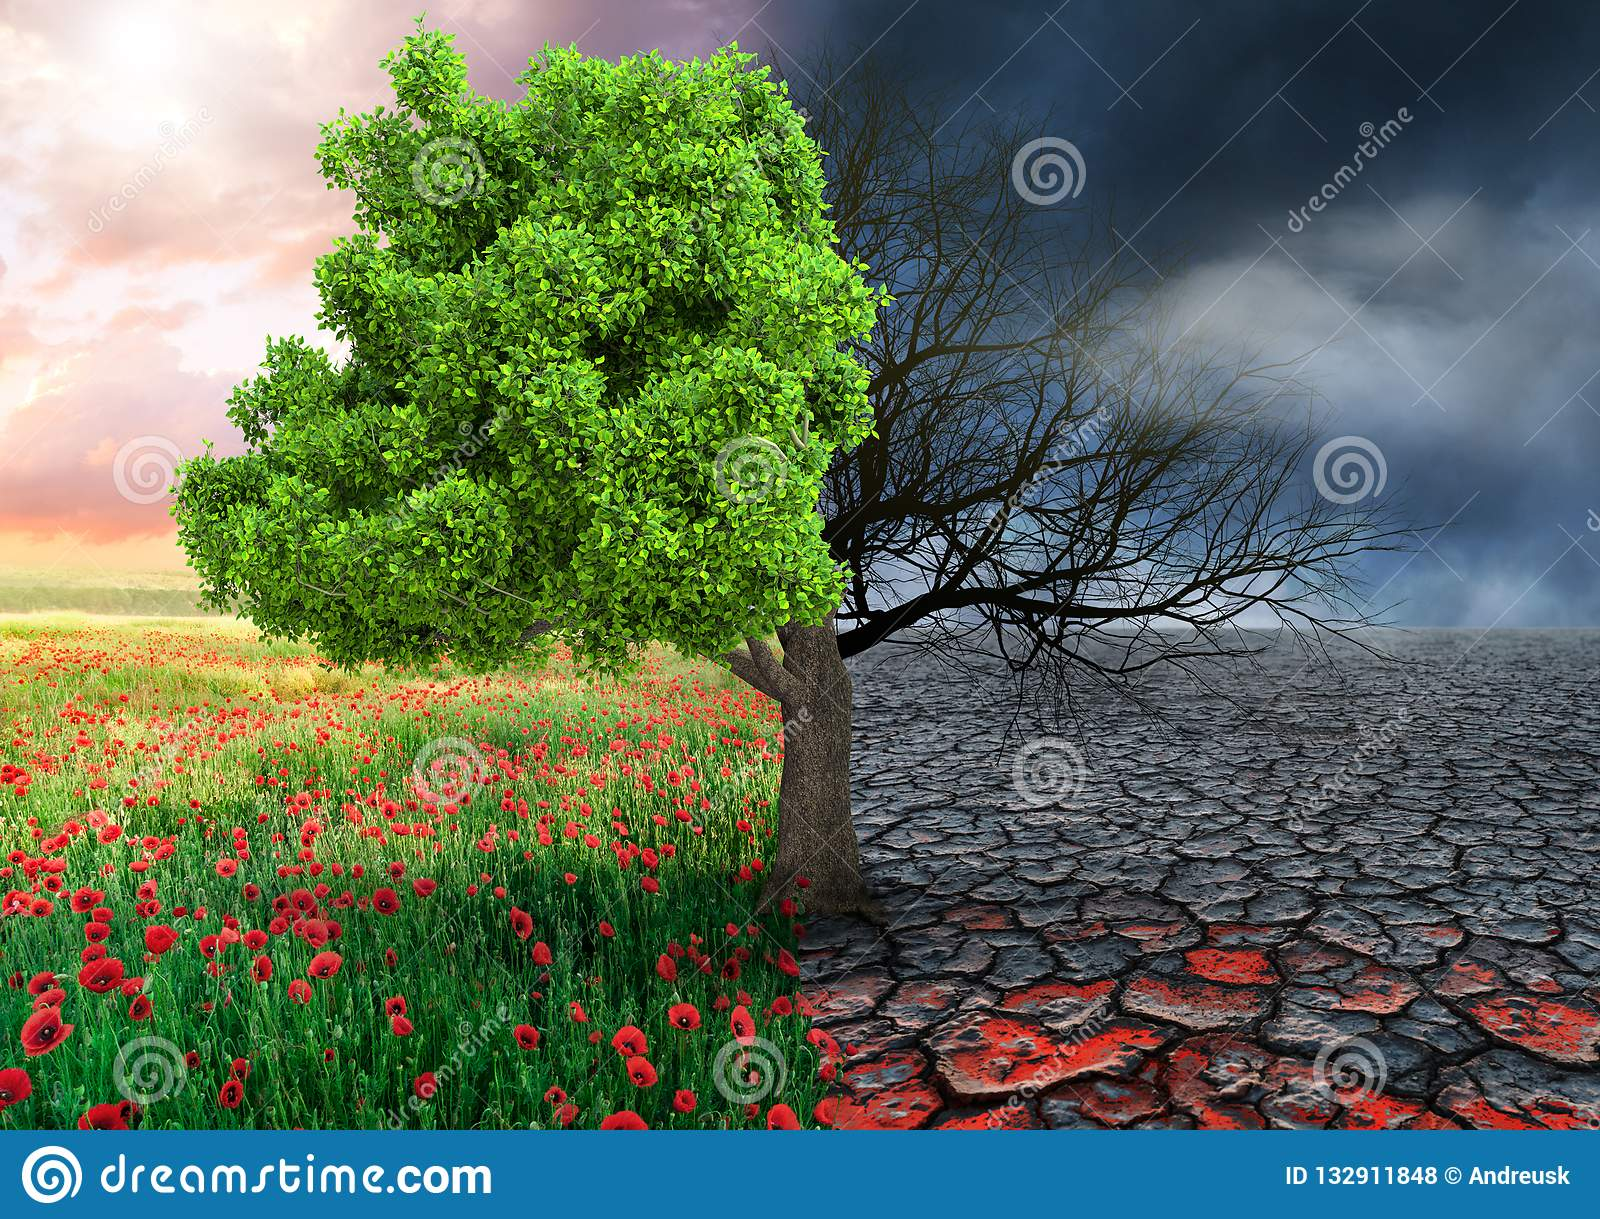 Ecological concept with tree and climate changing landscape